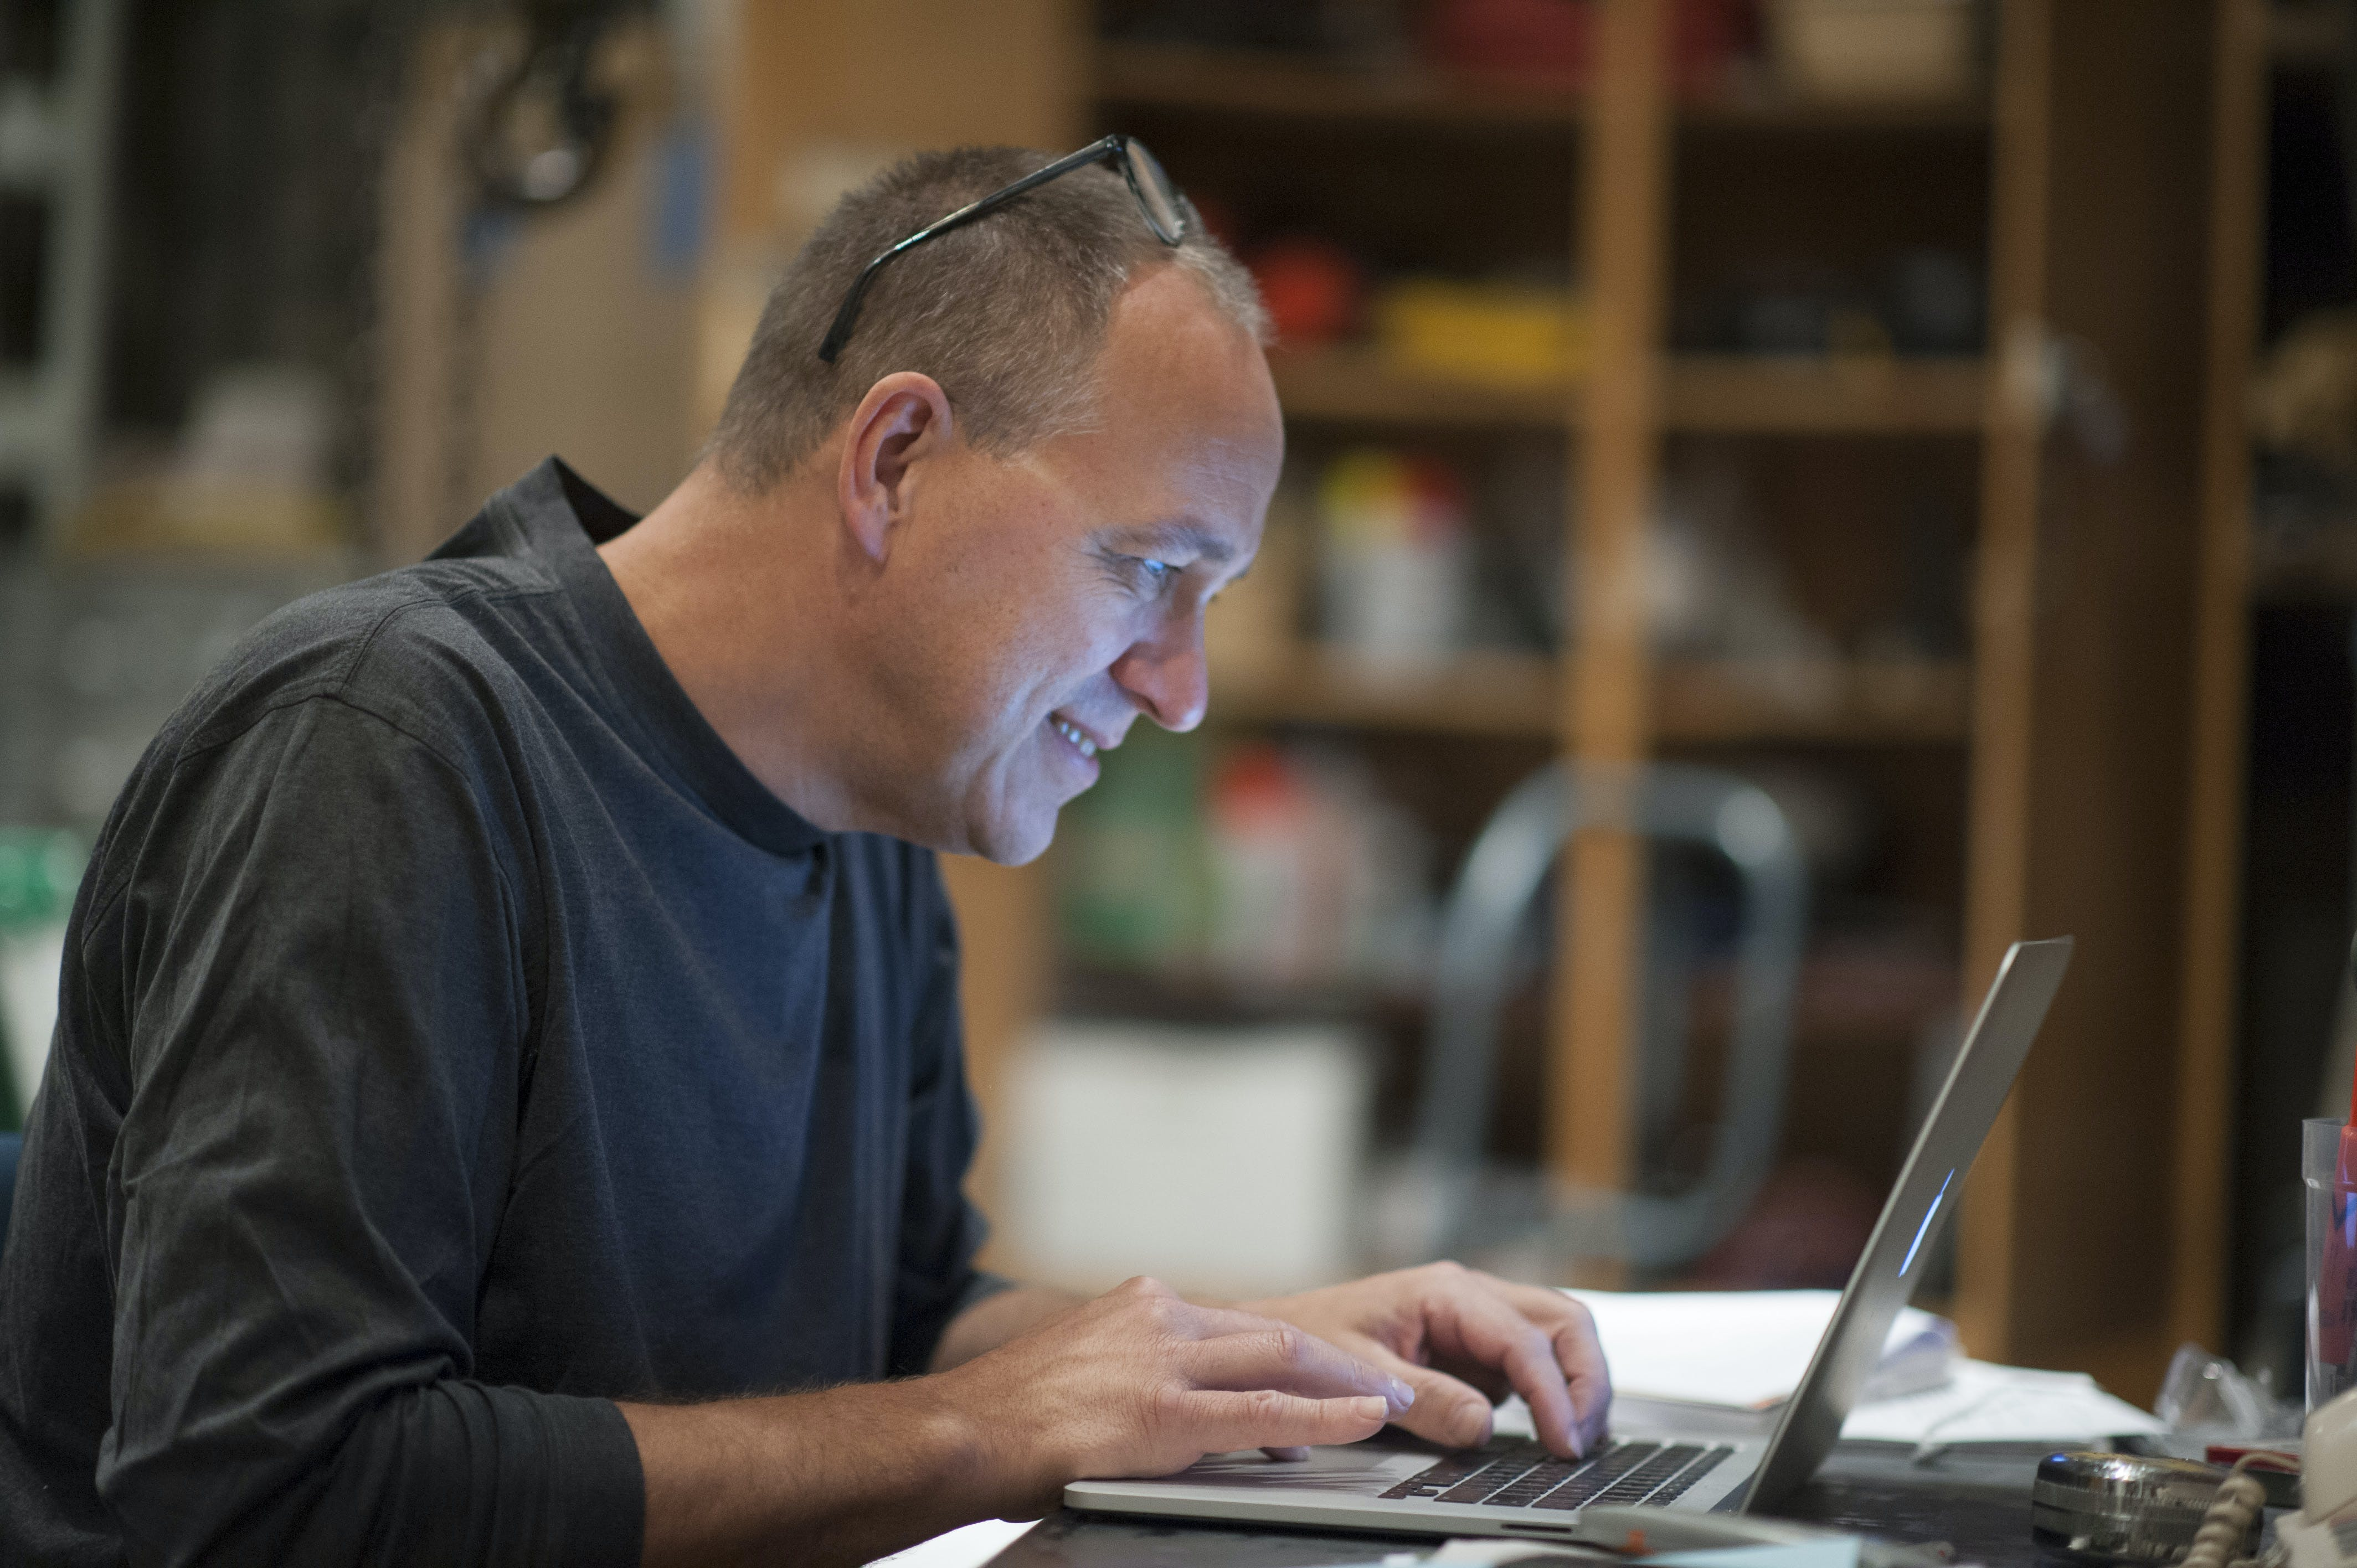 Faculty member on computer